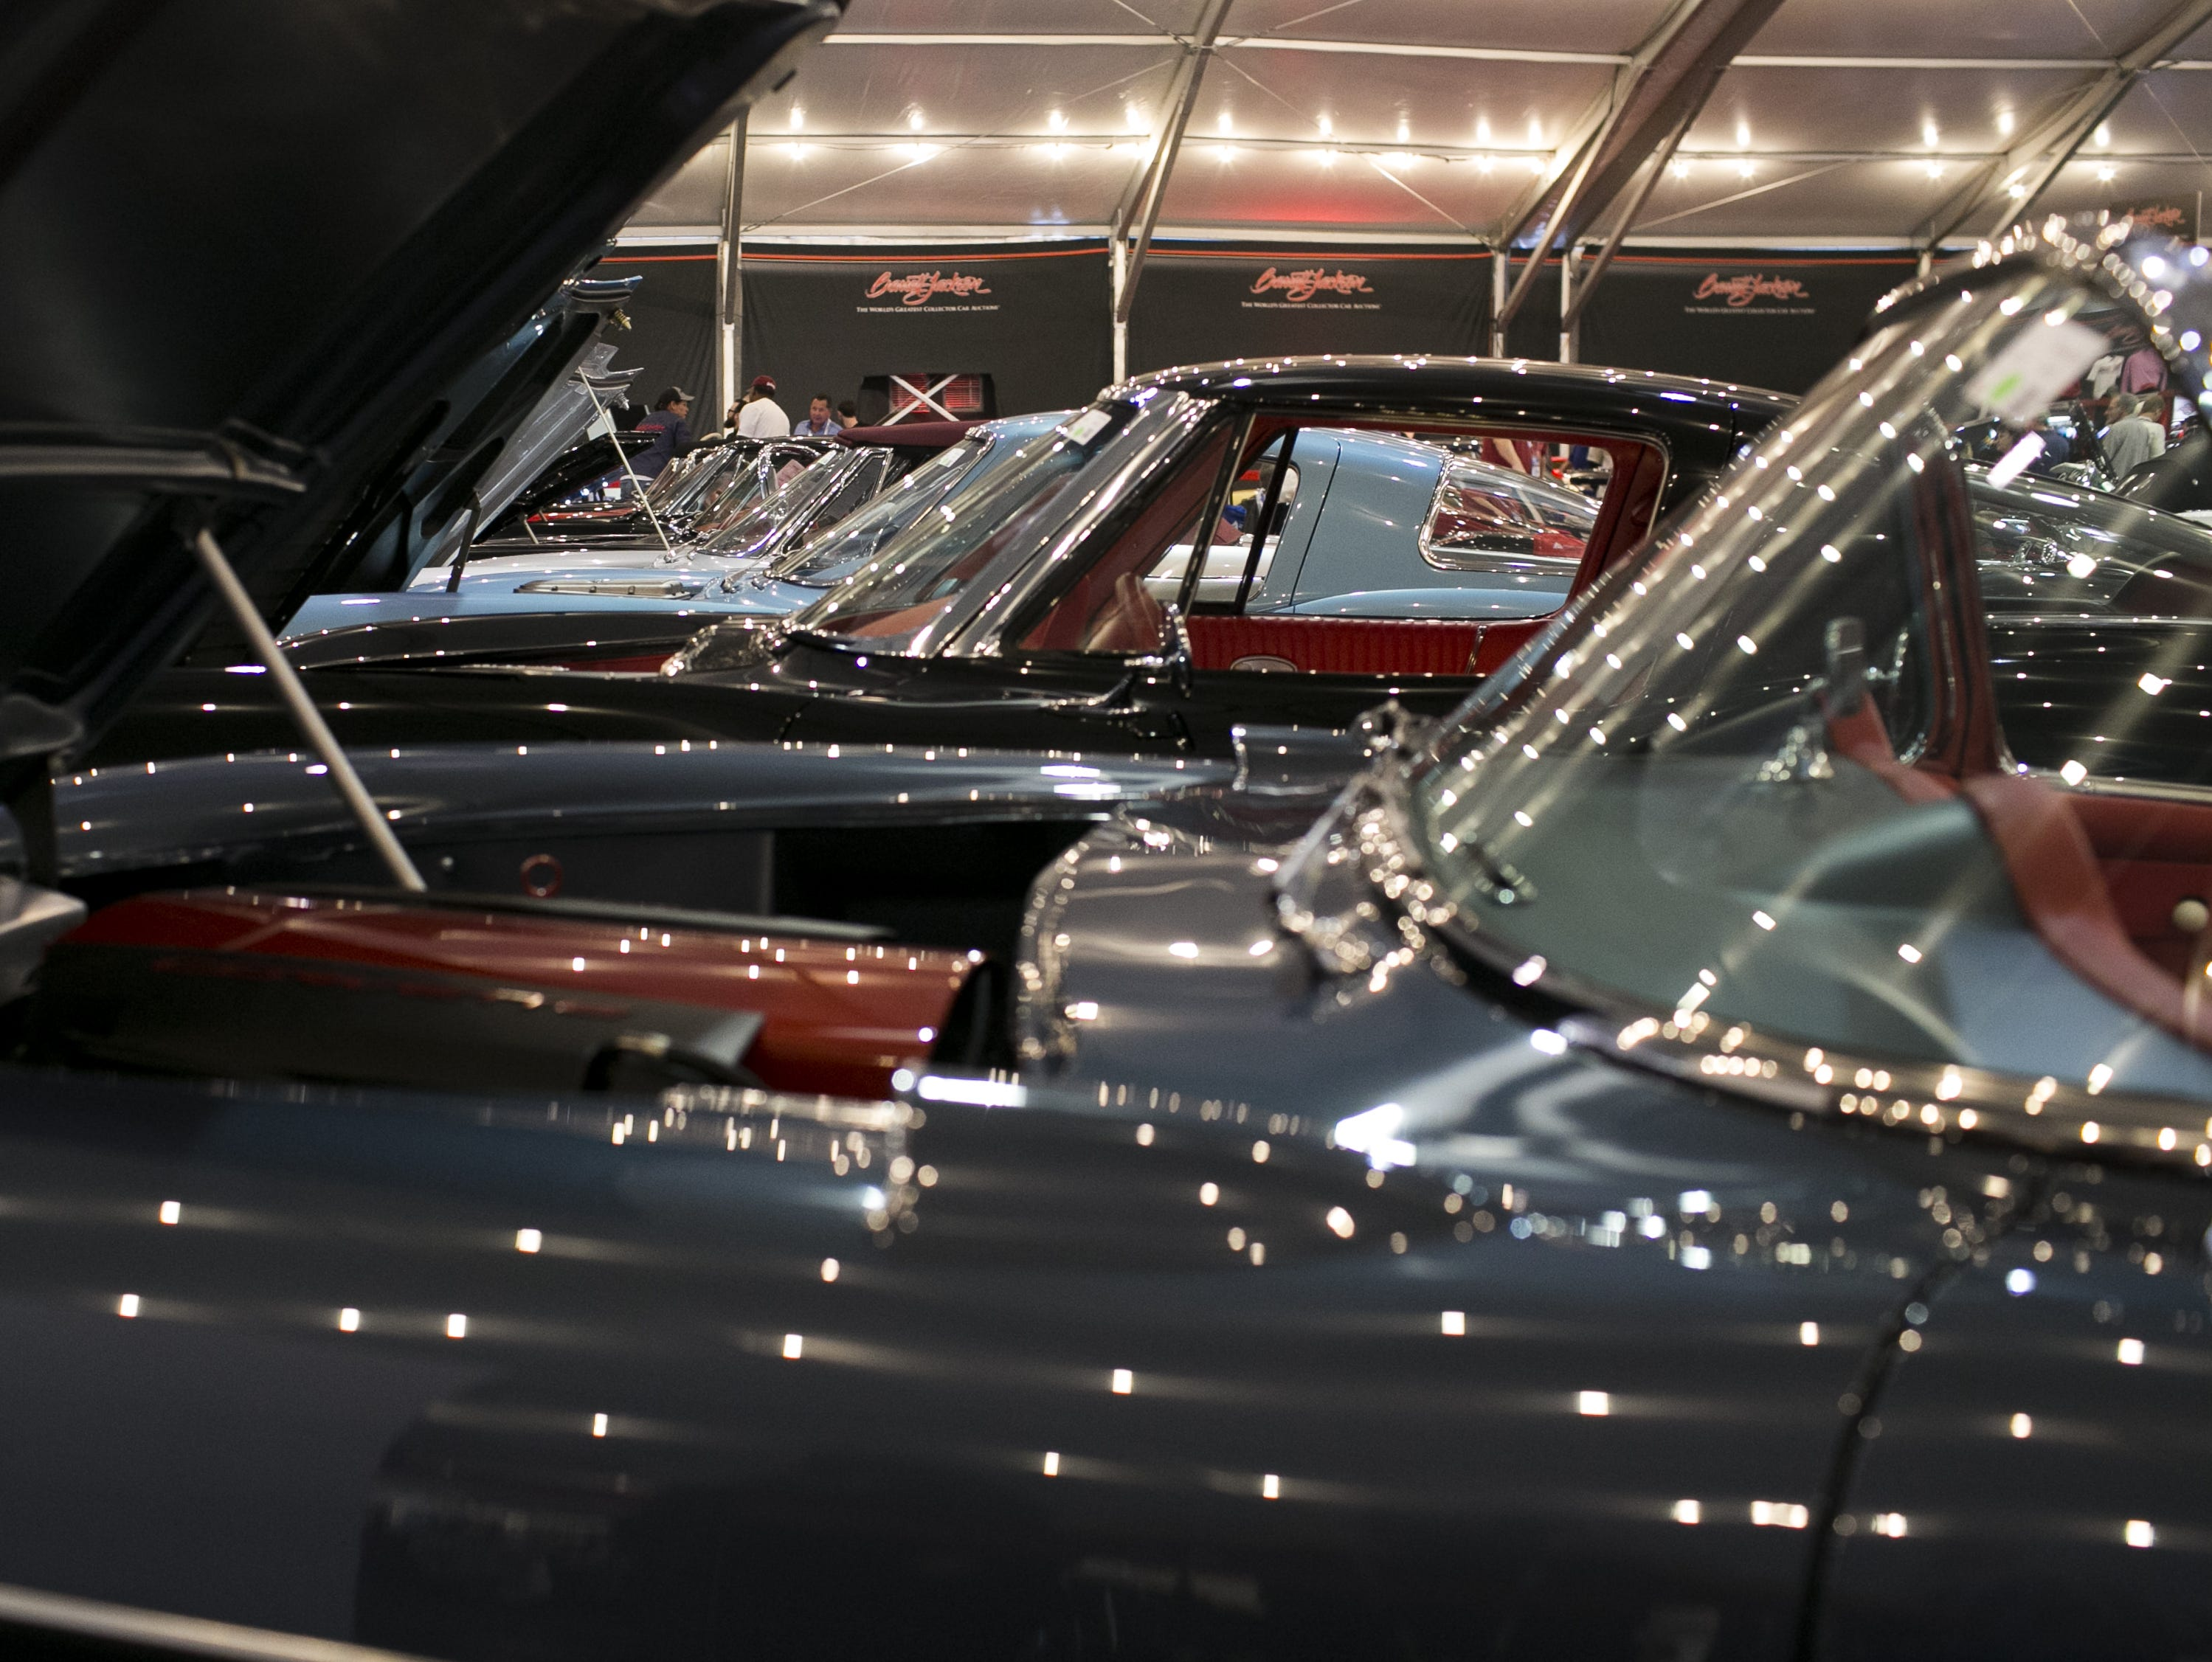 Classic cars sit at the Barrett-Jackson Car Auction at WestWorld in Scottsdale, Arizona, on  Jan. 16, 2019.